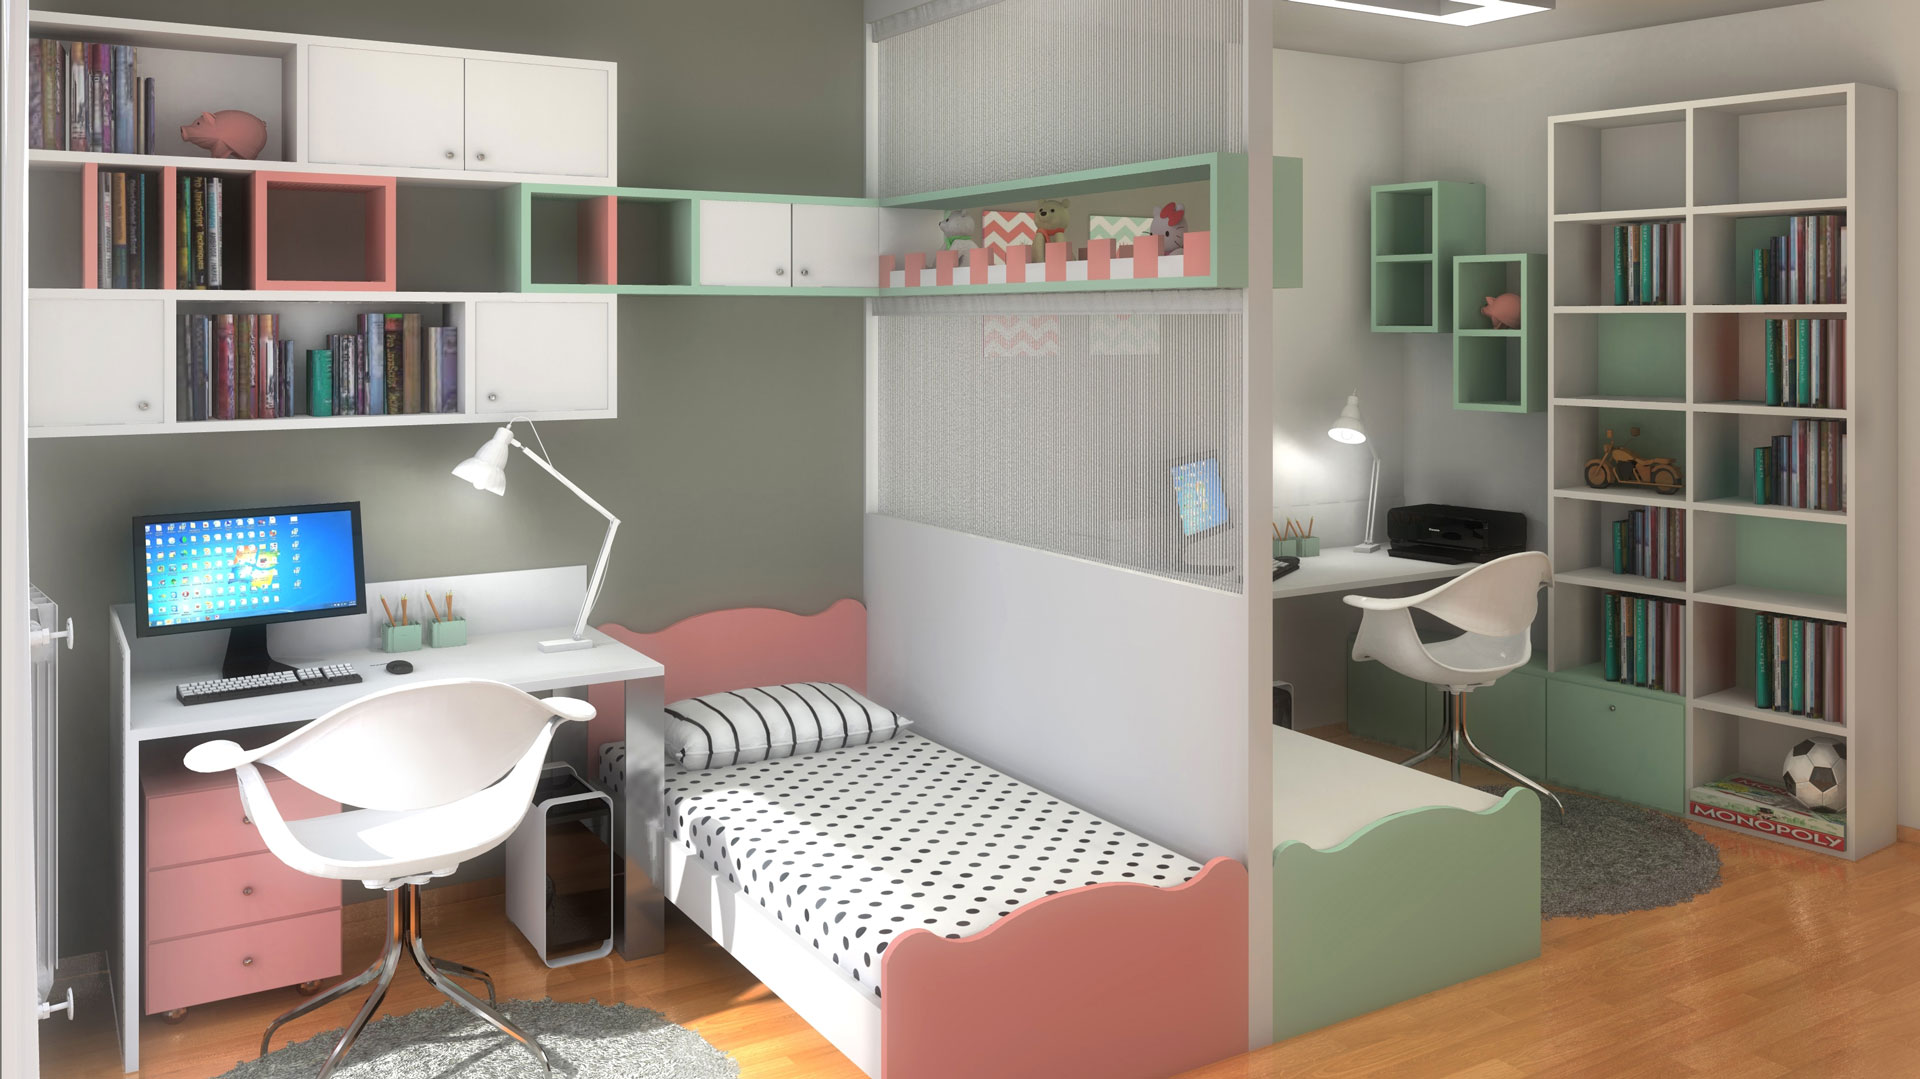 KIDS ROOM - ΑΙΓΑΛΕΩ - ΑΘΗΝΑ - KIDS ROOM - AIGALEO - ATHENS